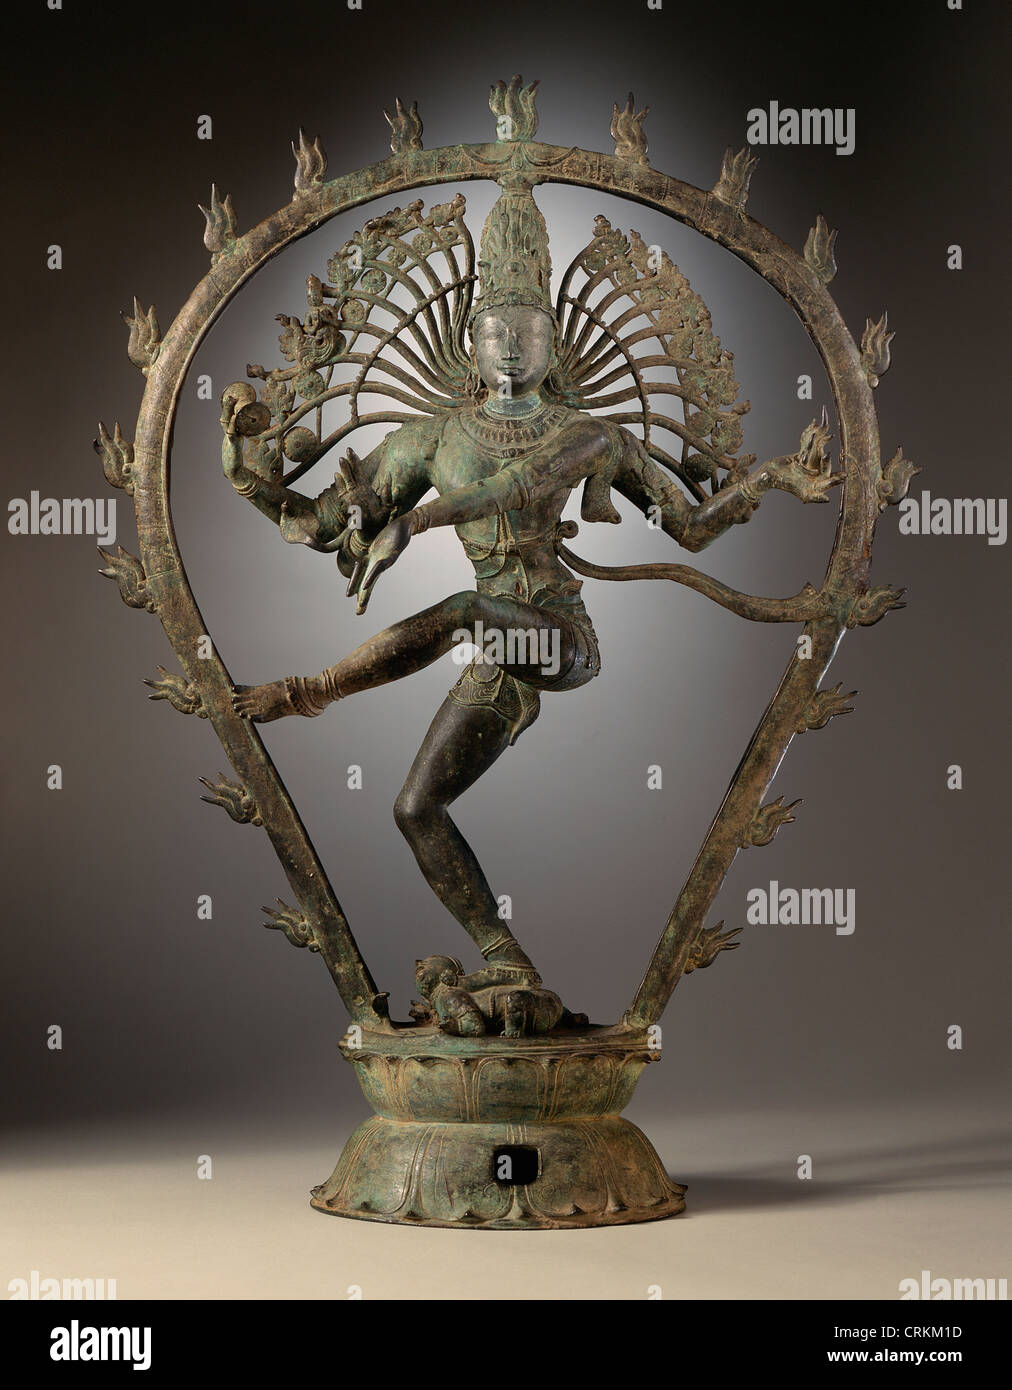 Sculpture of Shiva in copper alloy from India (Tamil Nadu). - Stock Image